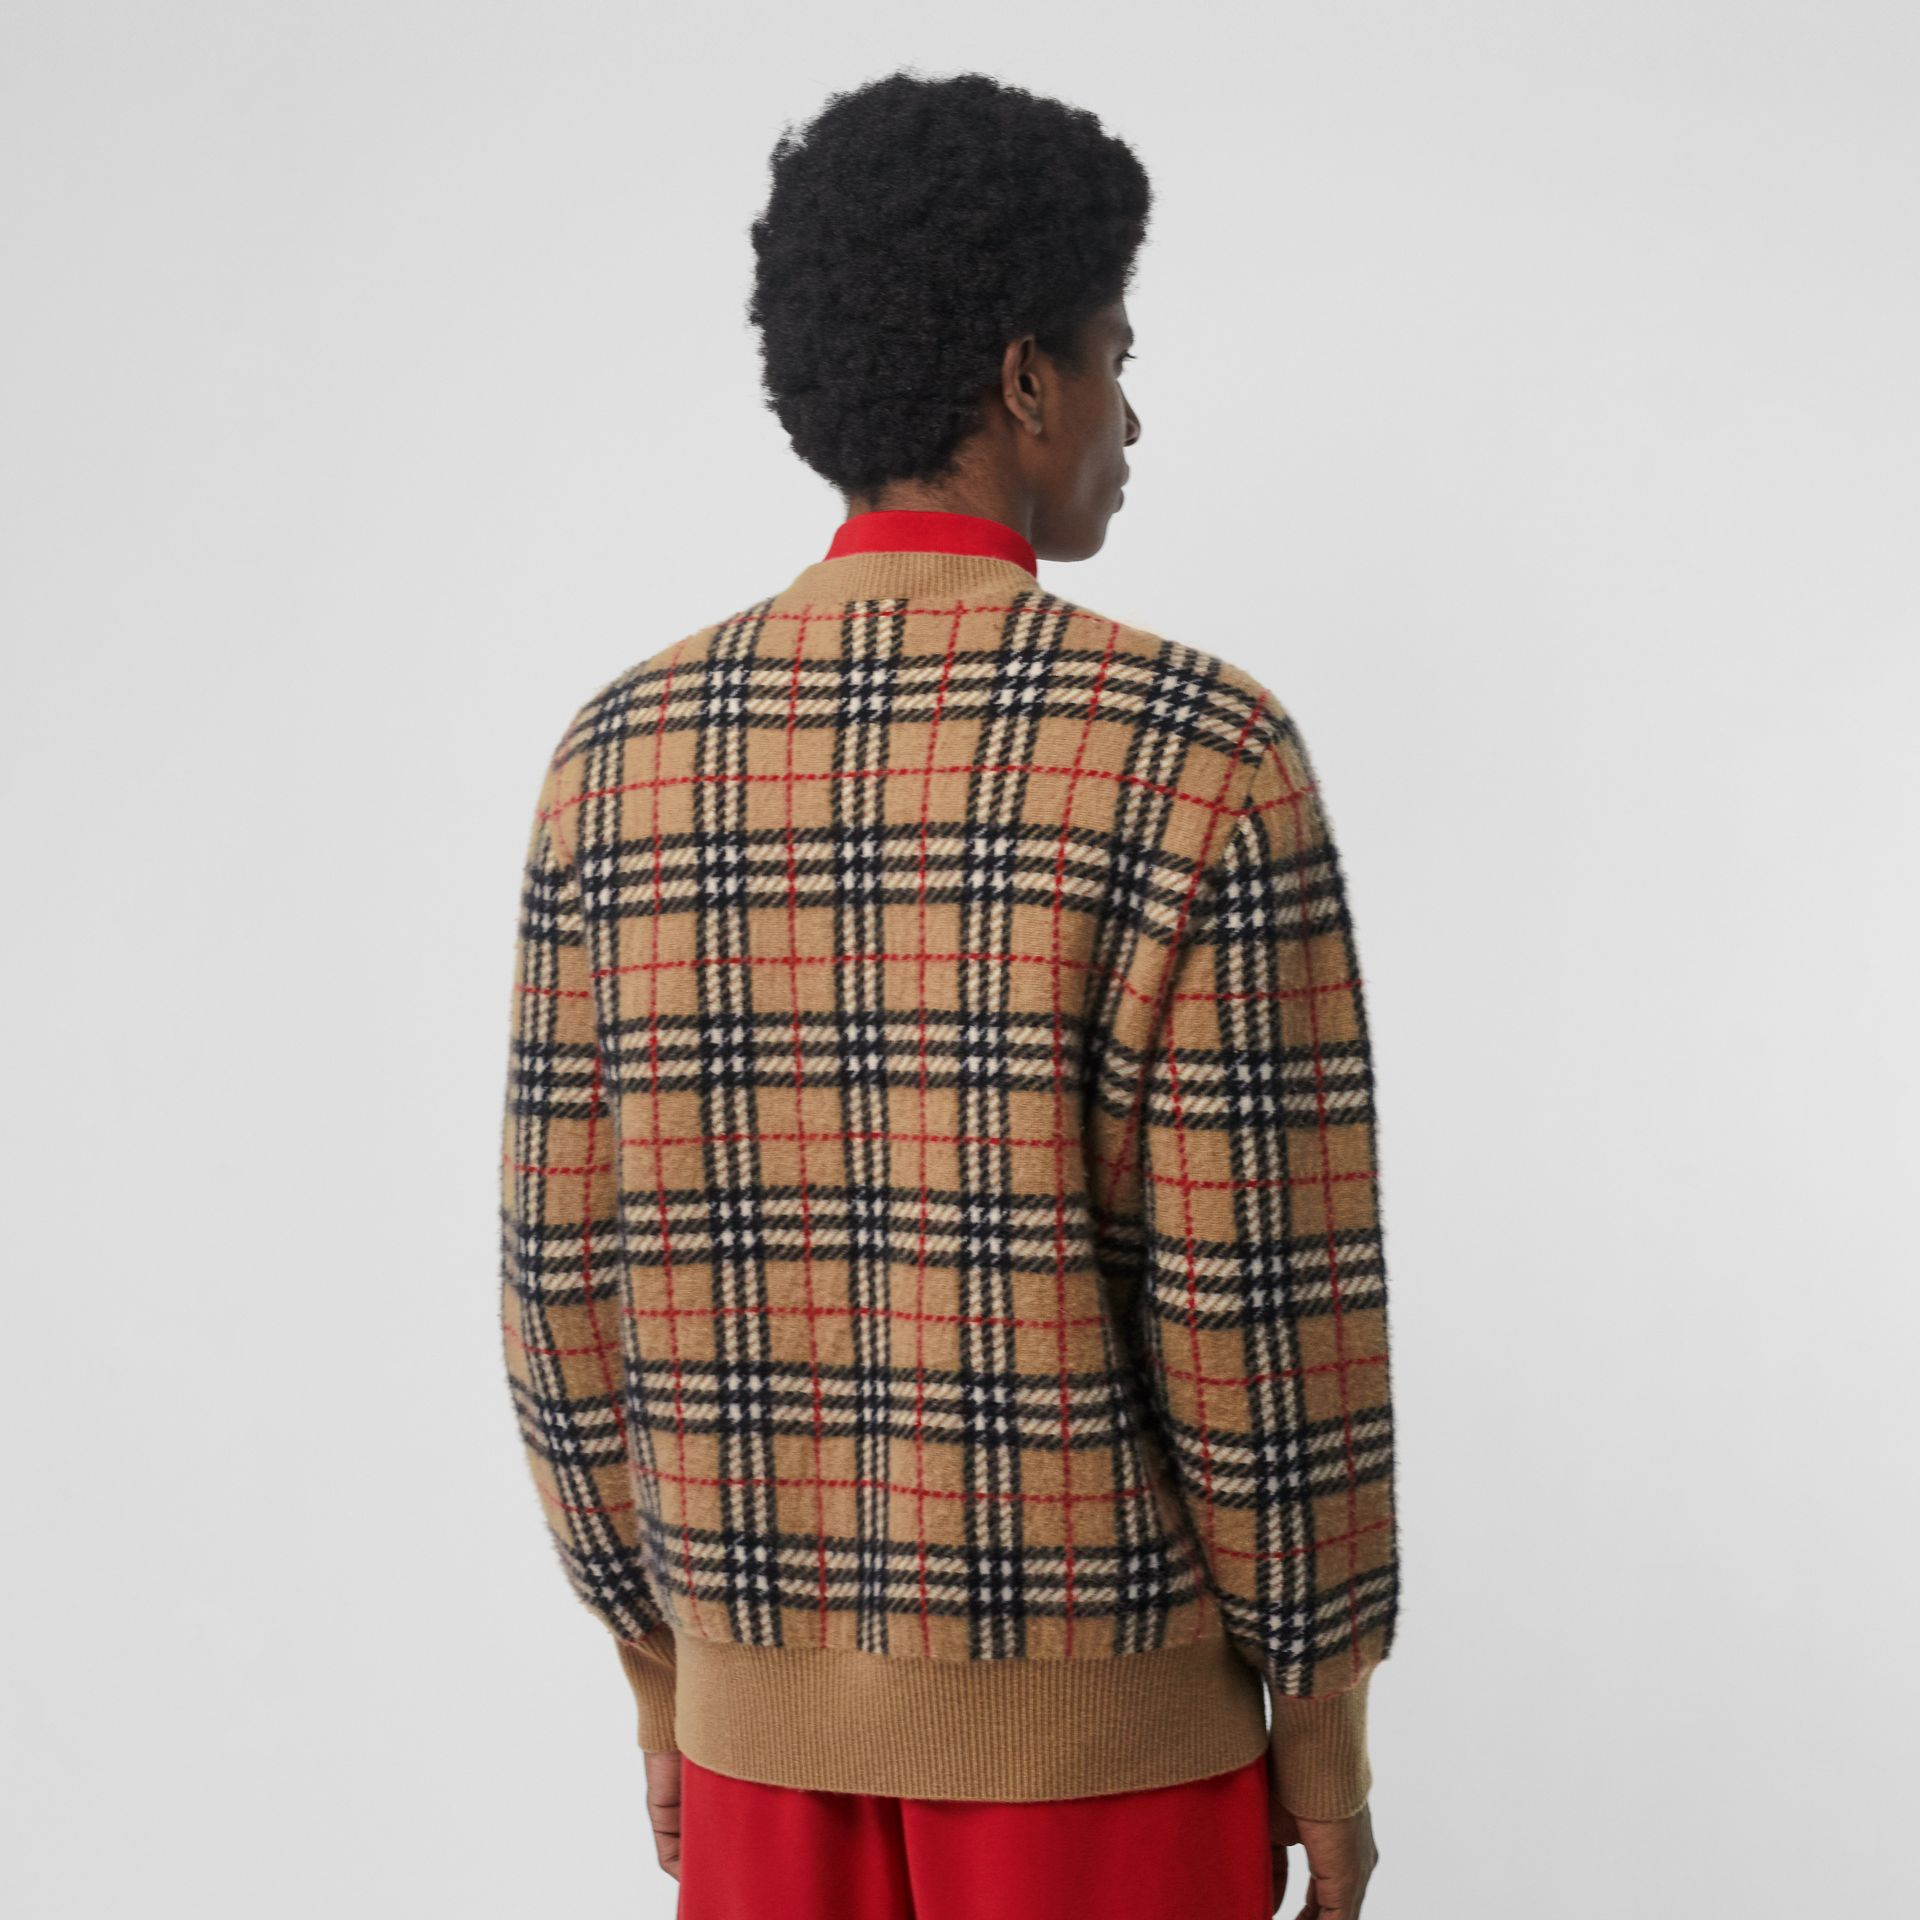 Vintage Check Cashmere Jacquard Sweater in Camel - Men | Burberry - gallery image 2